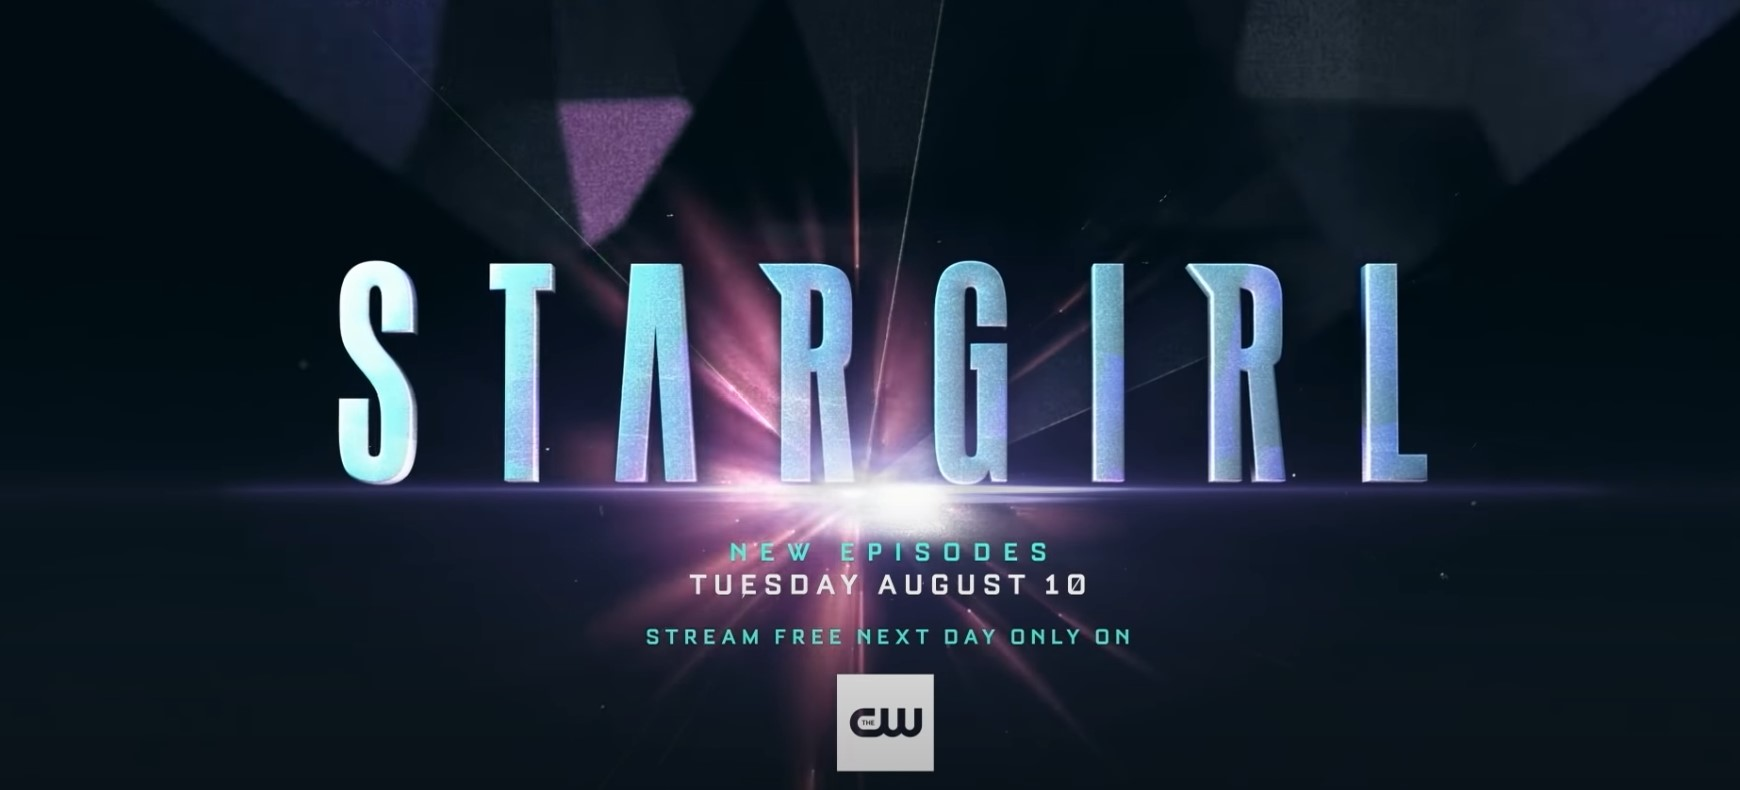 Star Girl Season 2 Release Date: When Is The Next Season Coming?